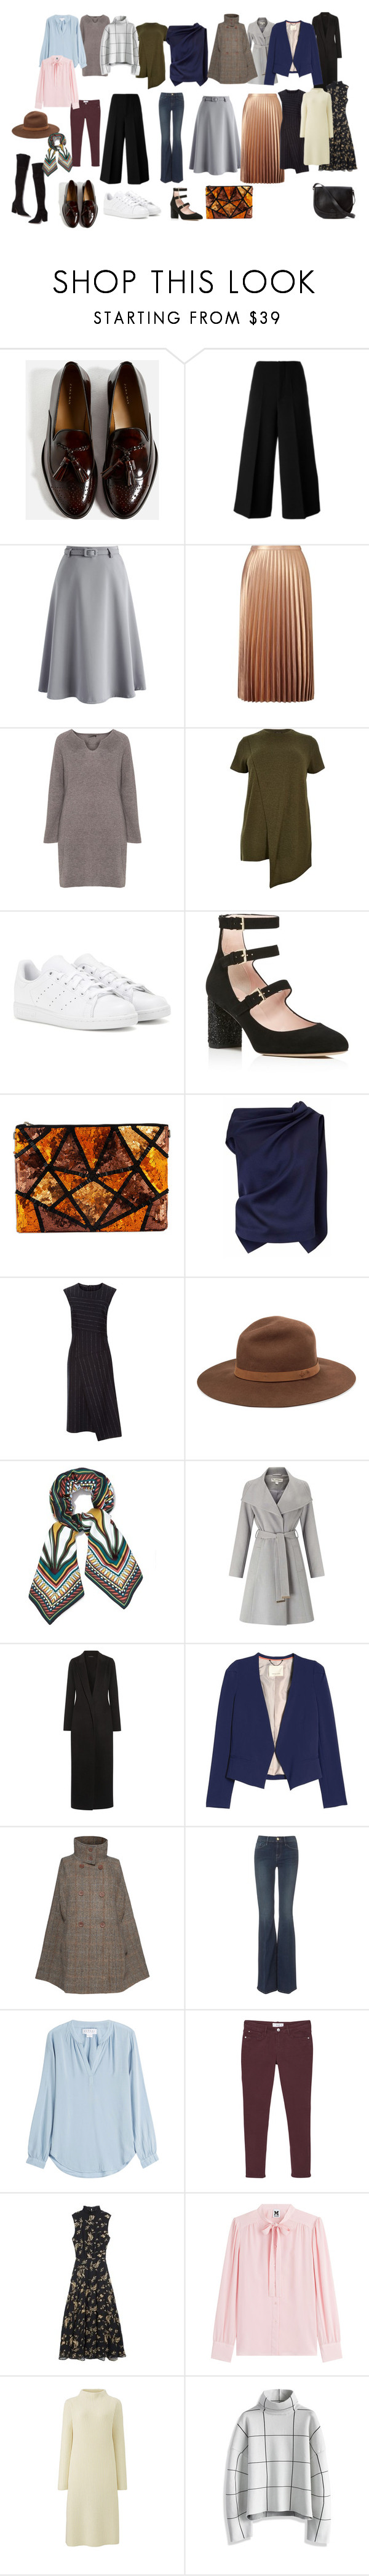 """""""апп"""" by inna-maksymets ❤ liked on Polyvore featuring Marni, Chicwish, Miss Selfridge, Open End, River Island, Loeffler Randall, adidas, Kate Spade, Roland Mouret and Cédric Charlier"""